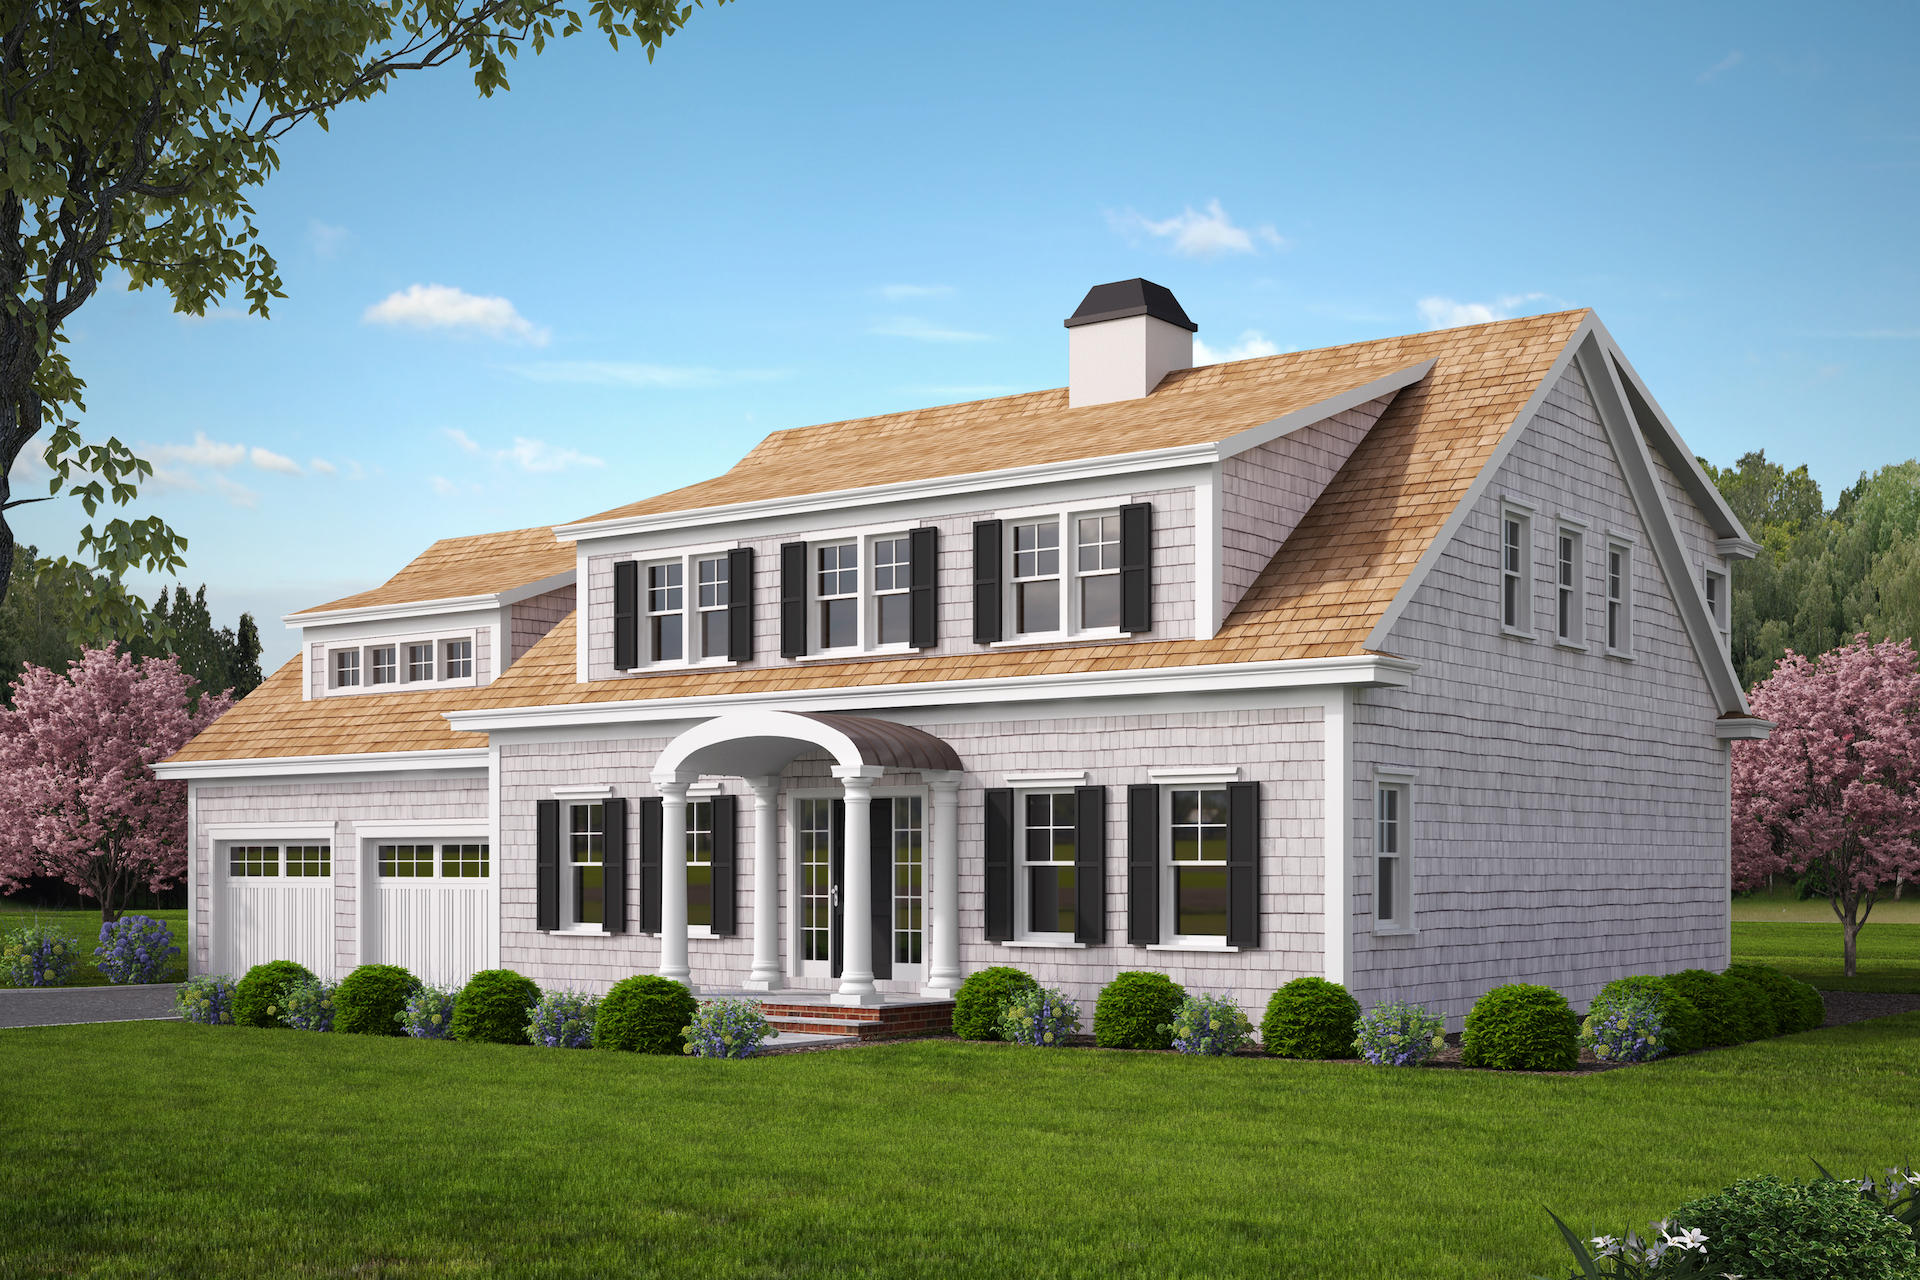 click to view more details 27 Shattuck Place, Chatham, MA 02633